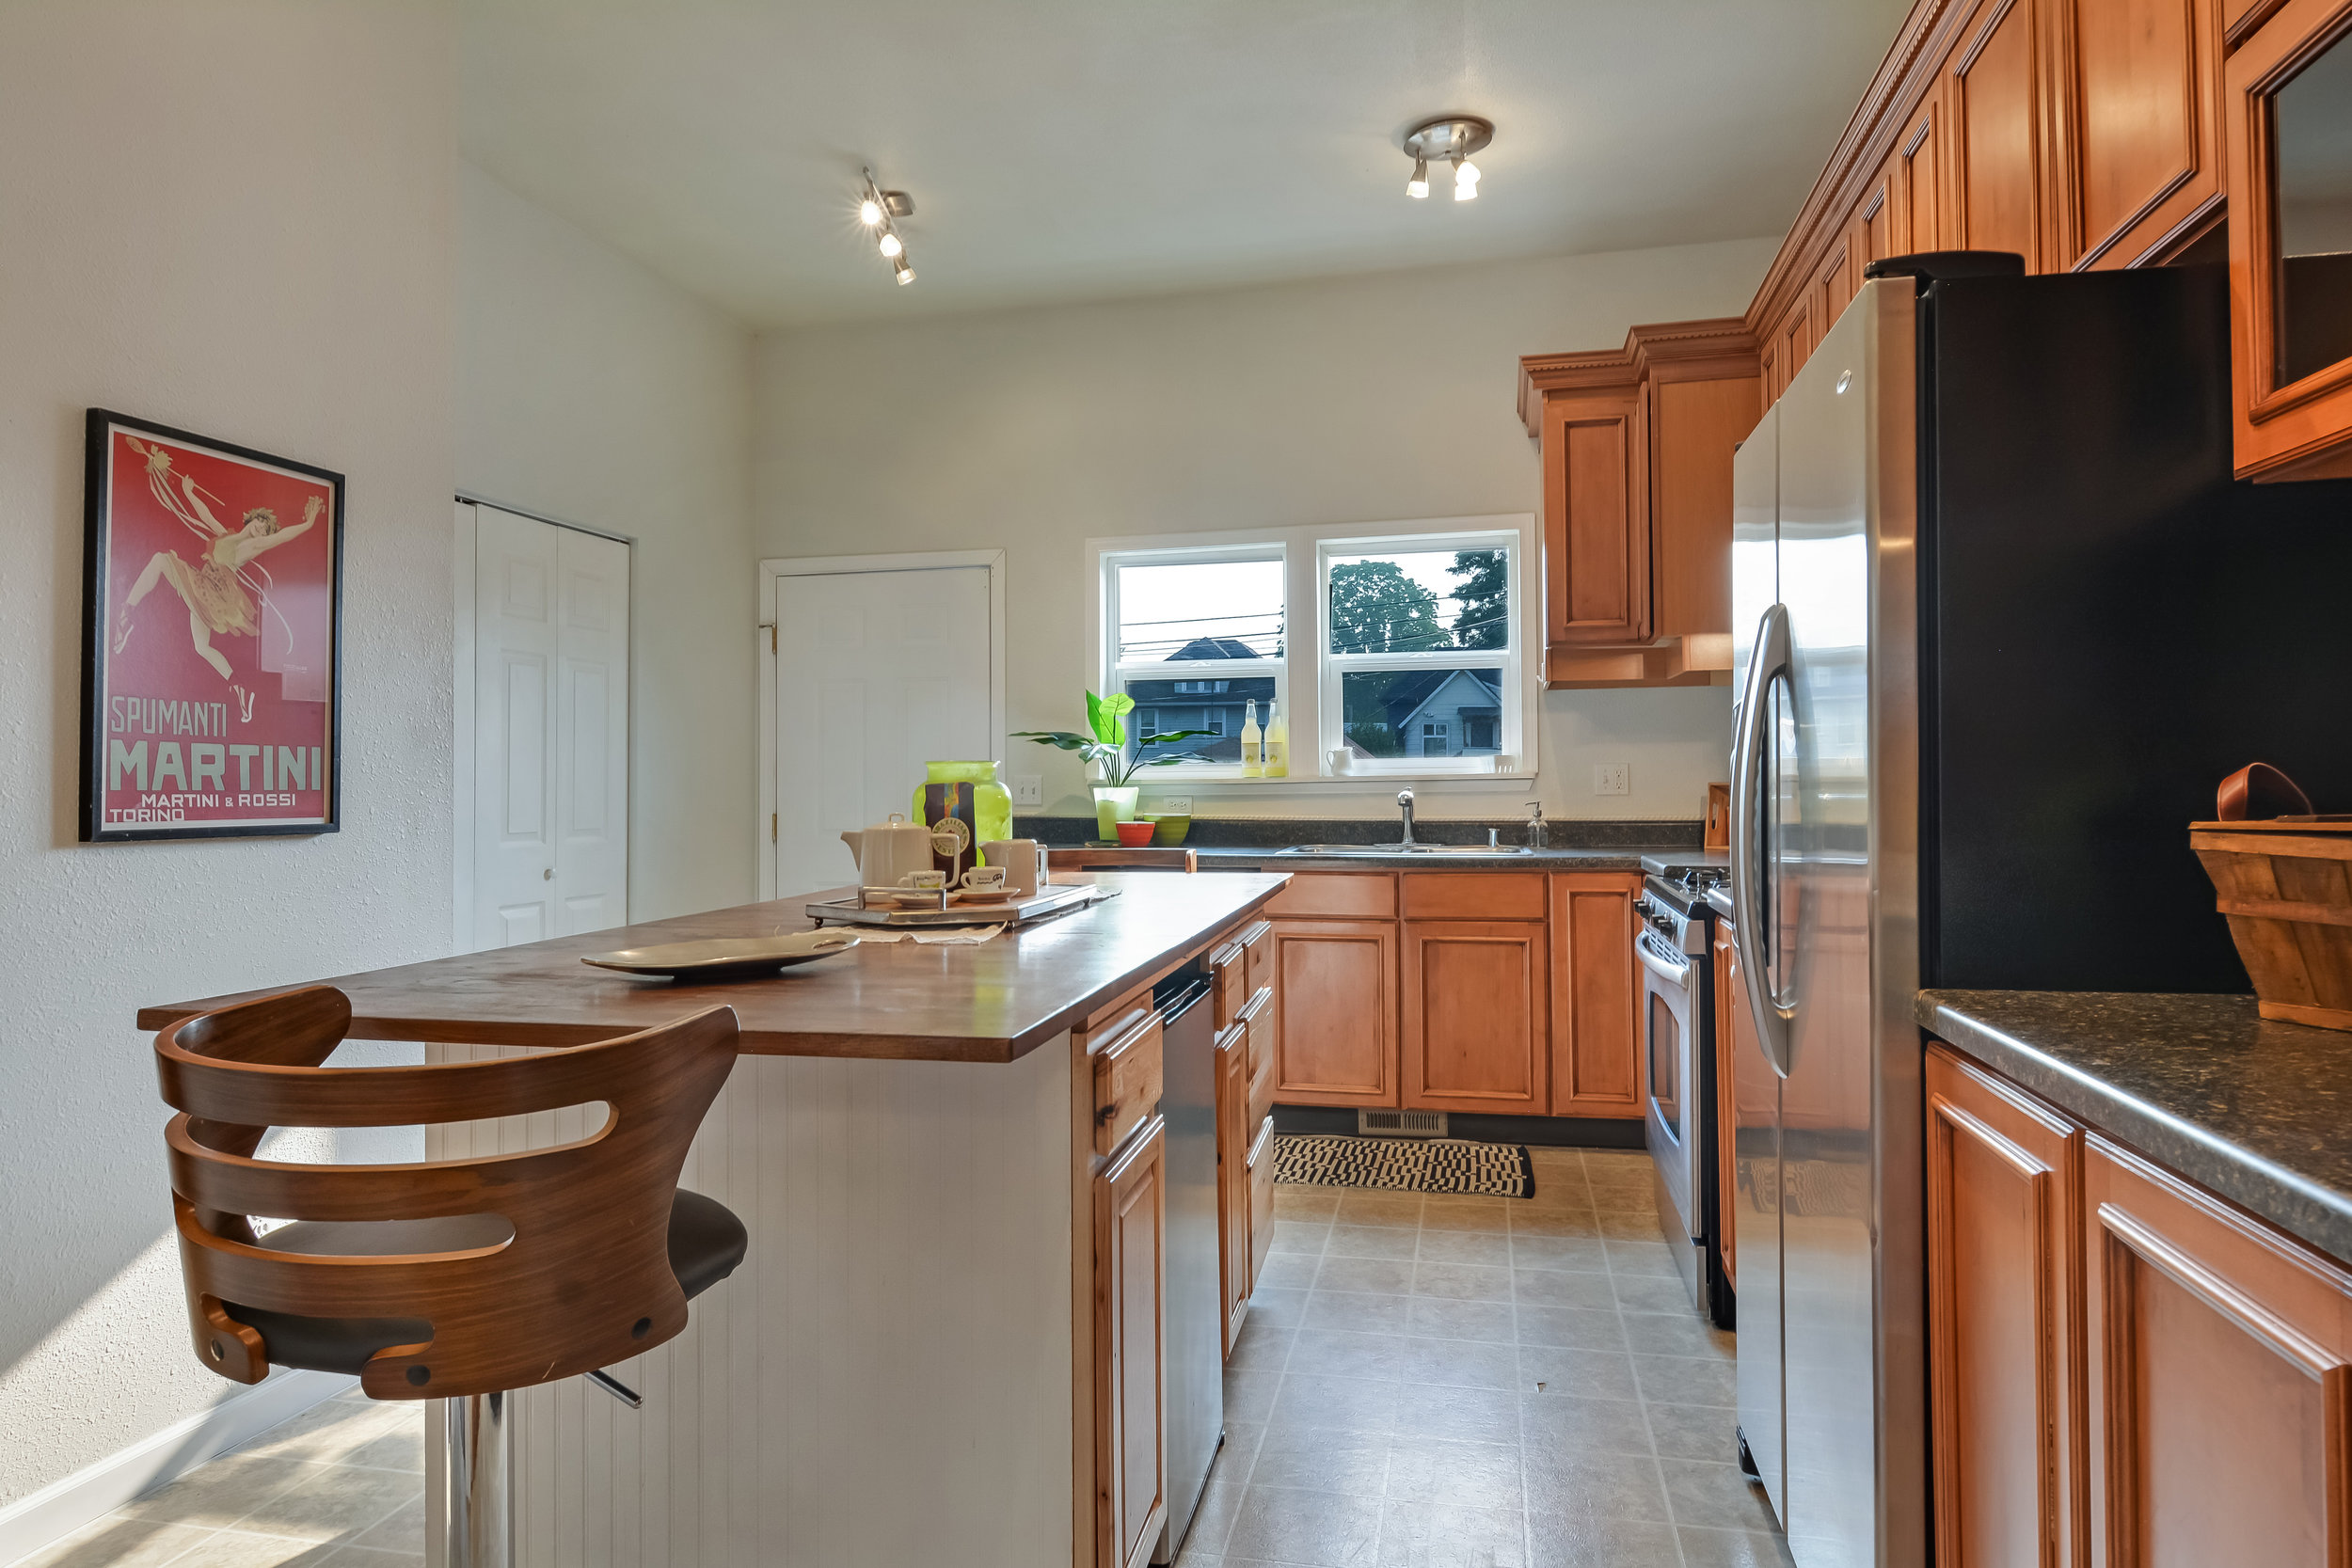 Another view of the custom kitchen island, this time with the mini fridge, perfect for beverages, in view. You'll also notice a door on the left. Inside are the washer and dryer.